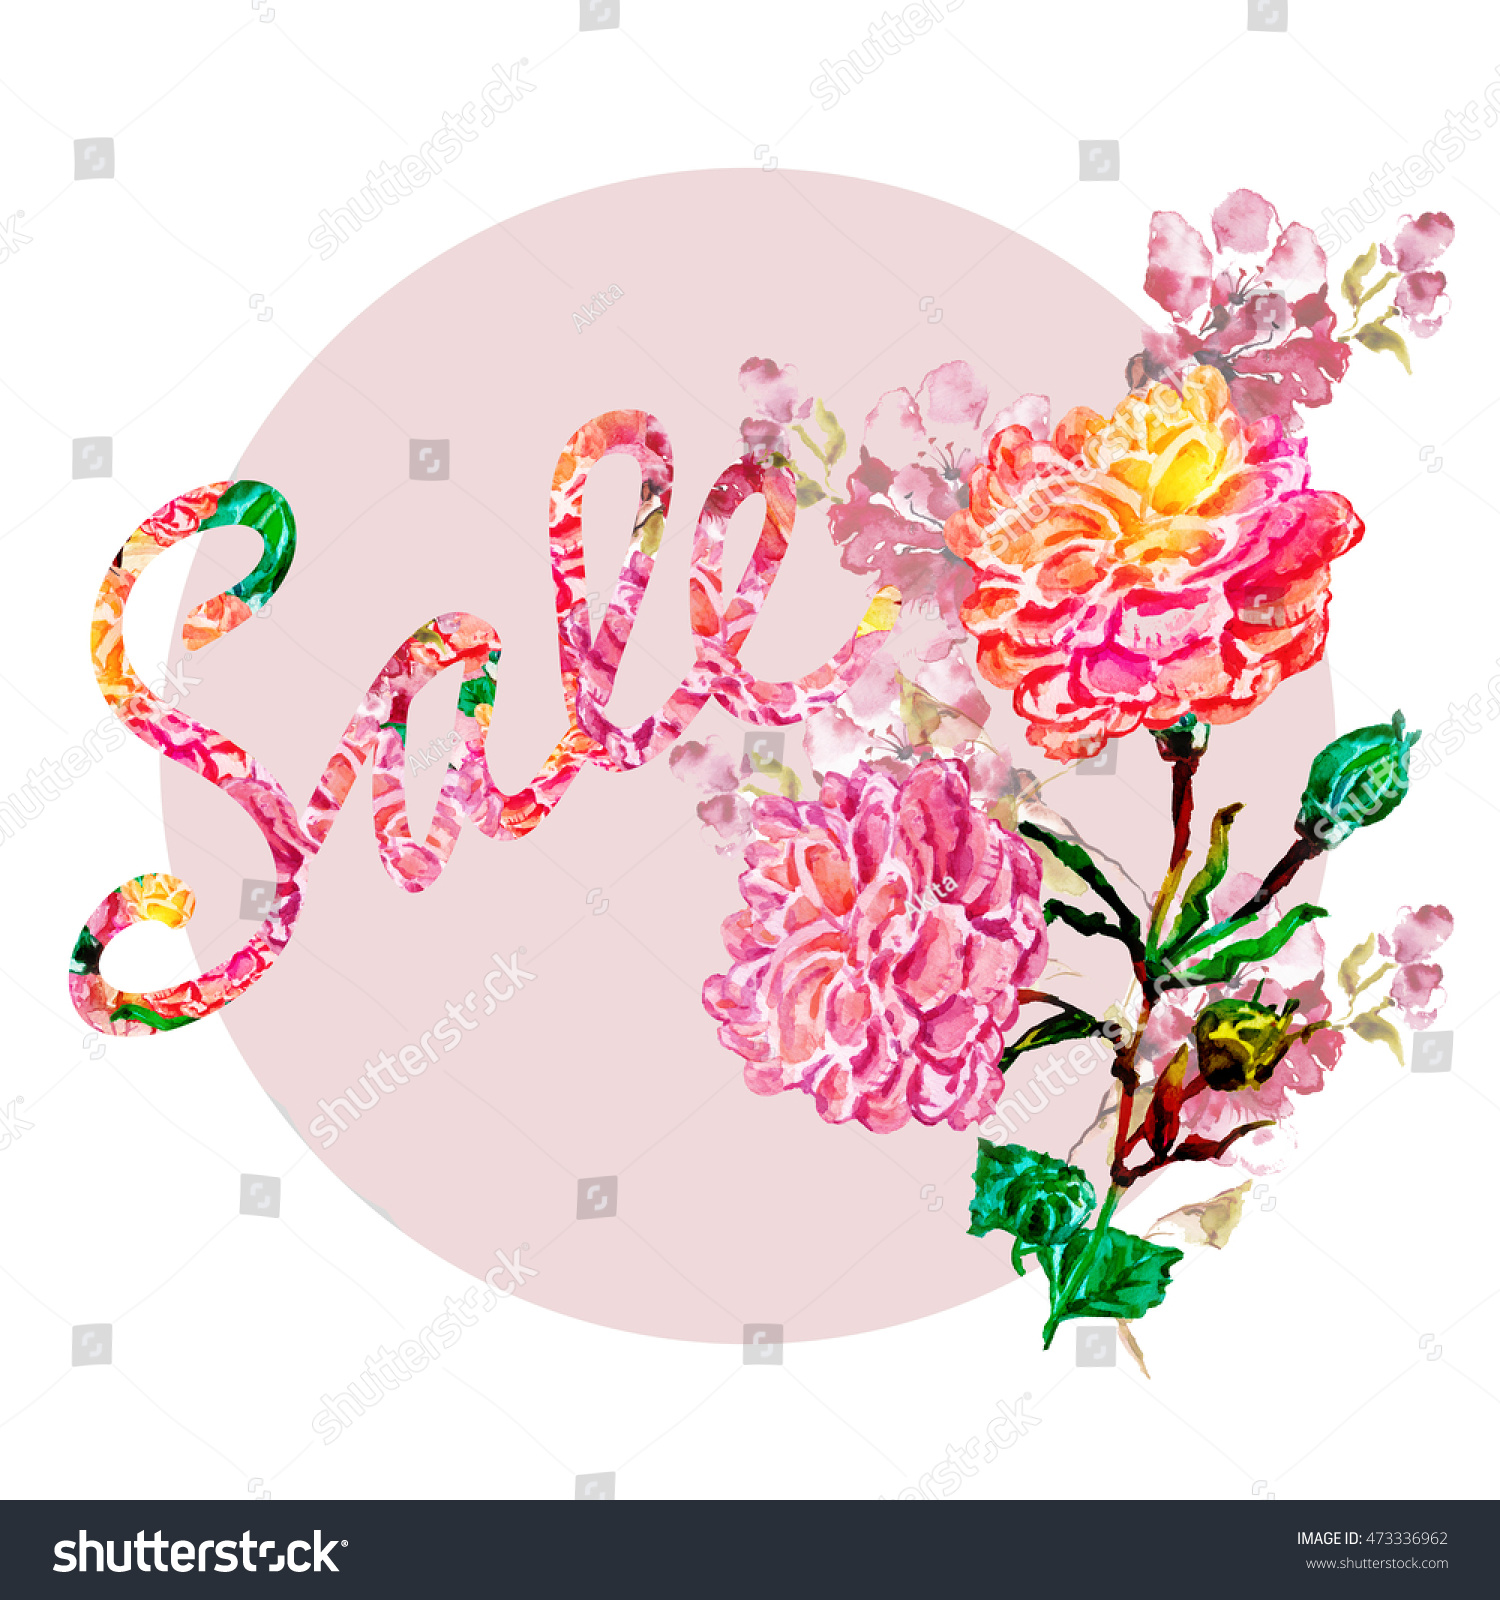 Royalty Free Stock Illustration of Water Color Letters Flowers Drawn ...